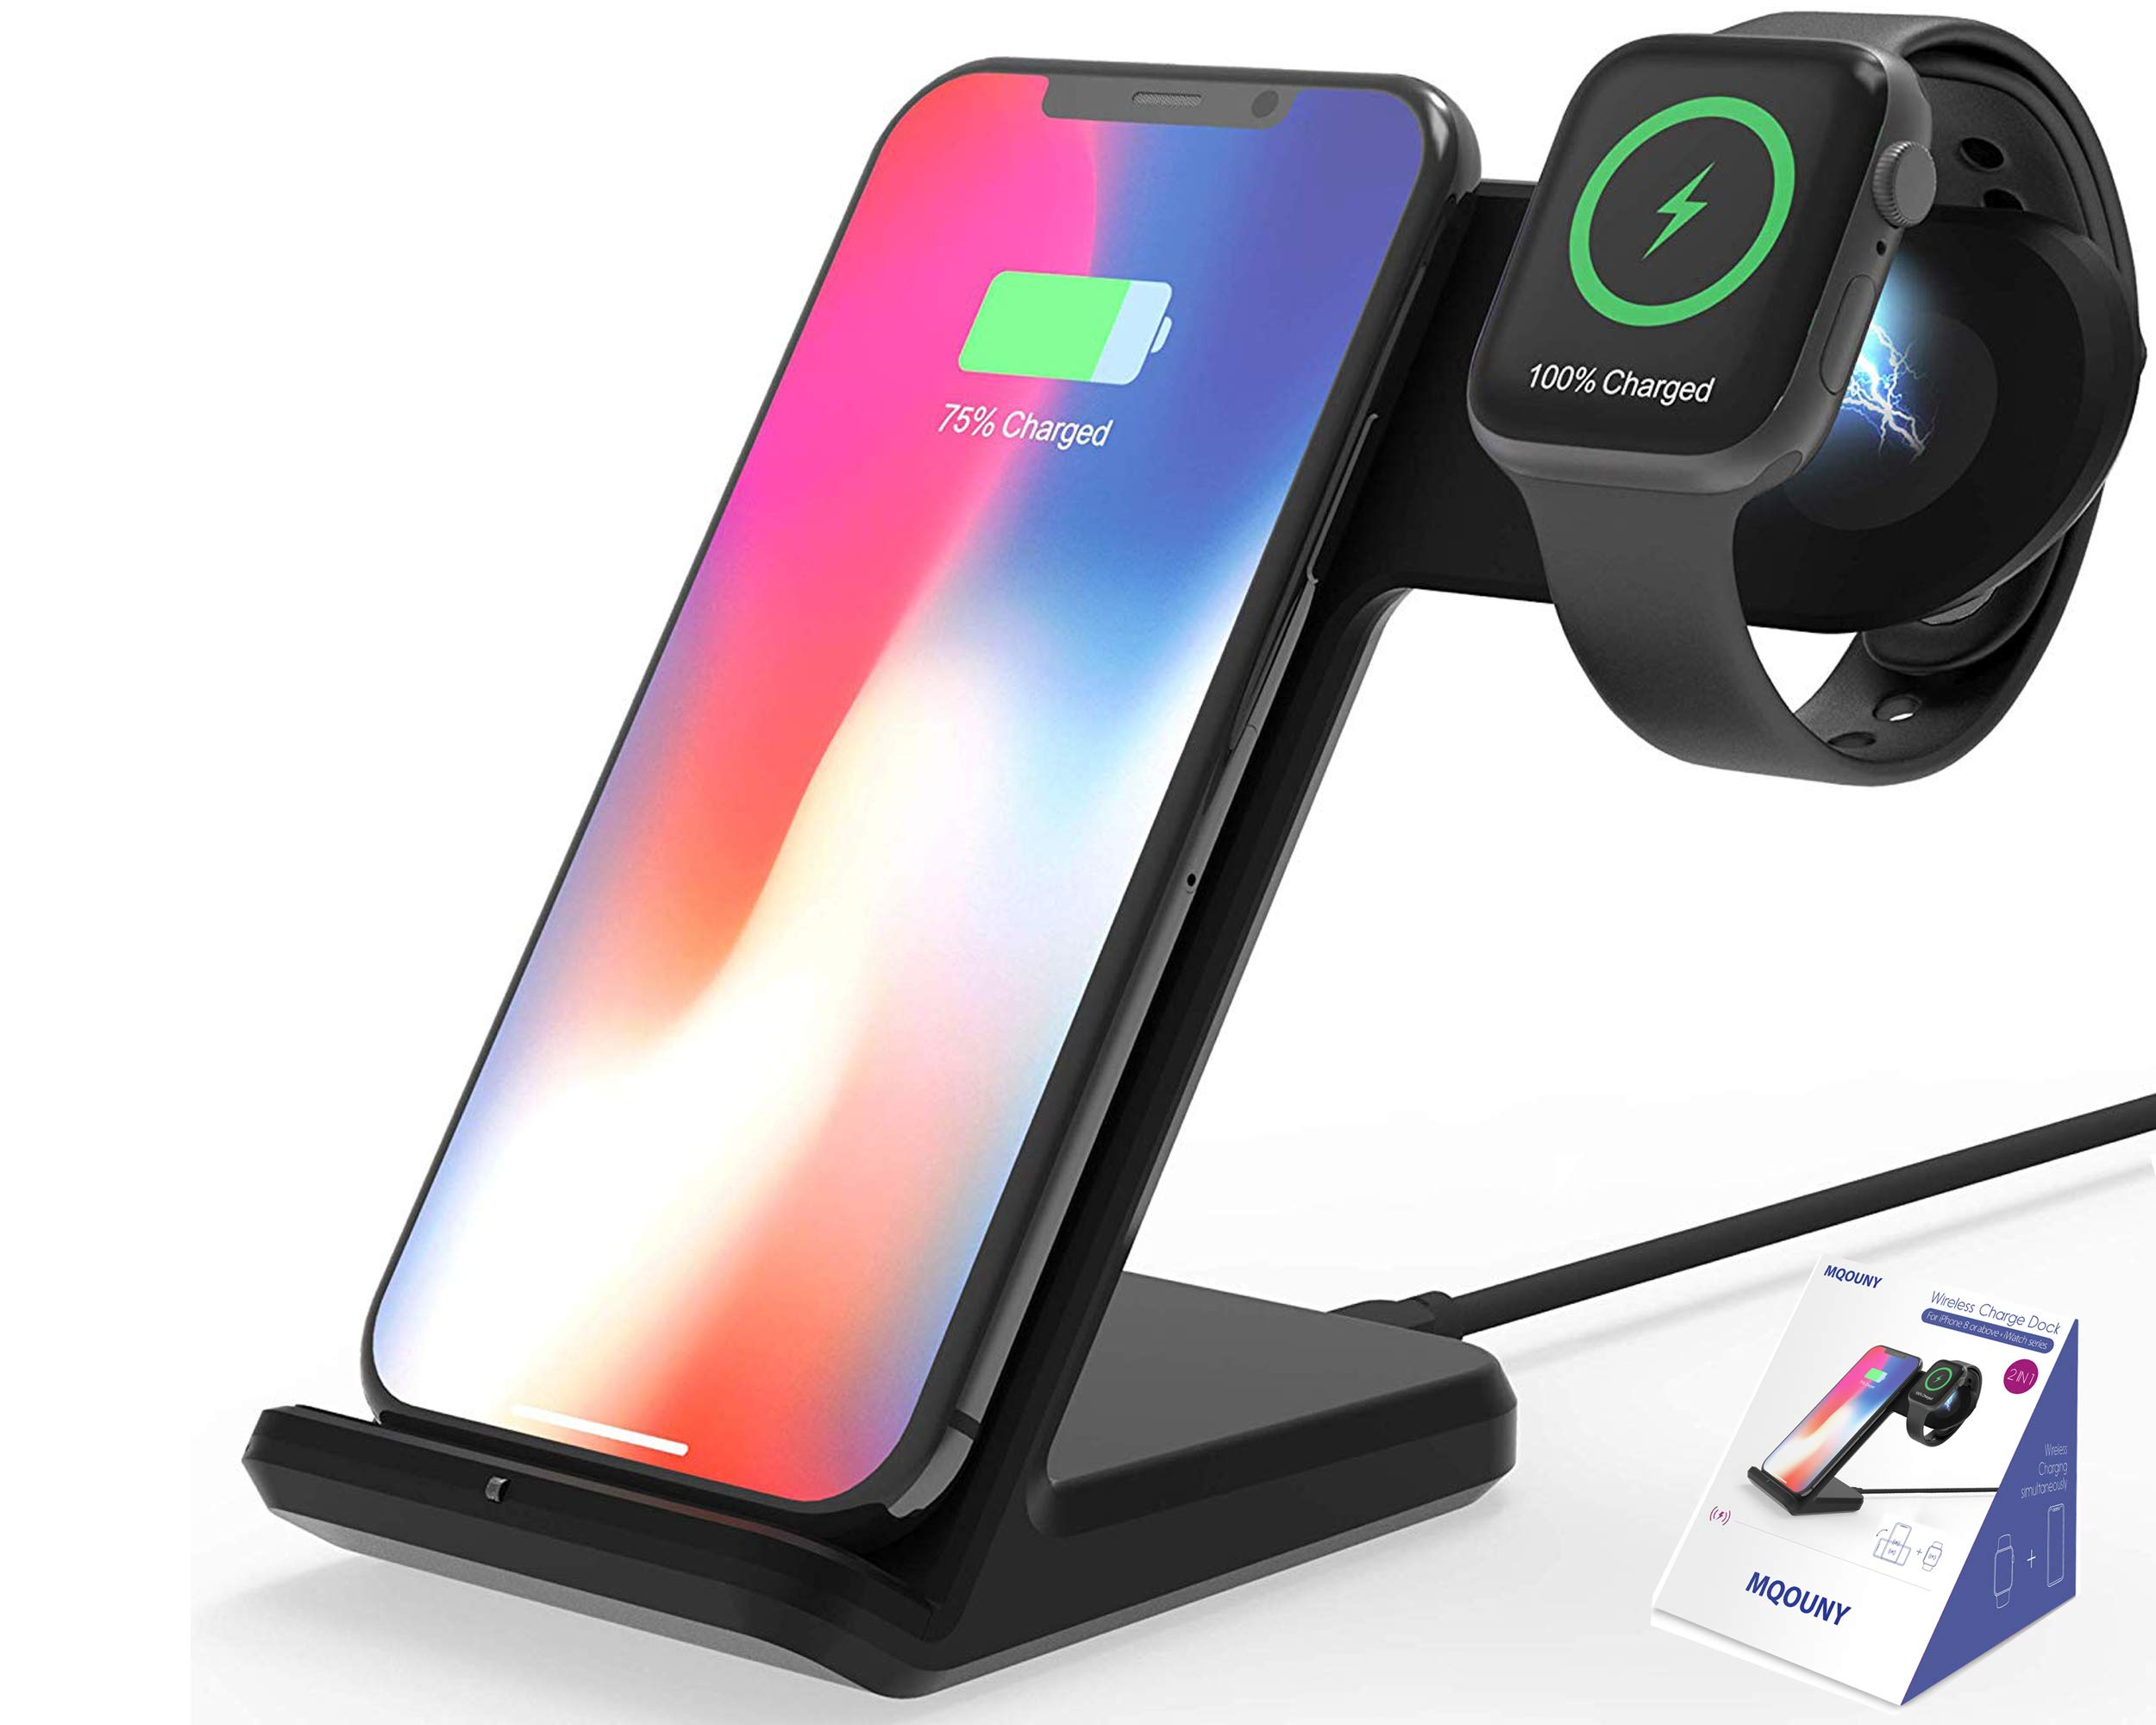 Wireless Charger,MQOUNY 2 in1 in 1 Wireless Charger Stand,Charging Station Compatible with iWatch Series 4/3/2/1,Fast Wireless Charger Compatible with iPhone 8/X/XR,Samsung S10 All Qi Phones (Black) by MQOUNY